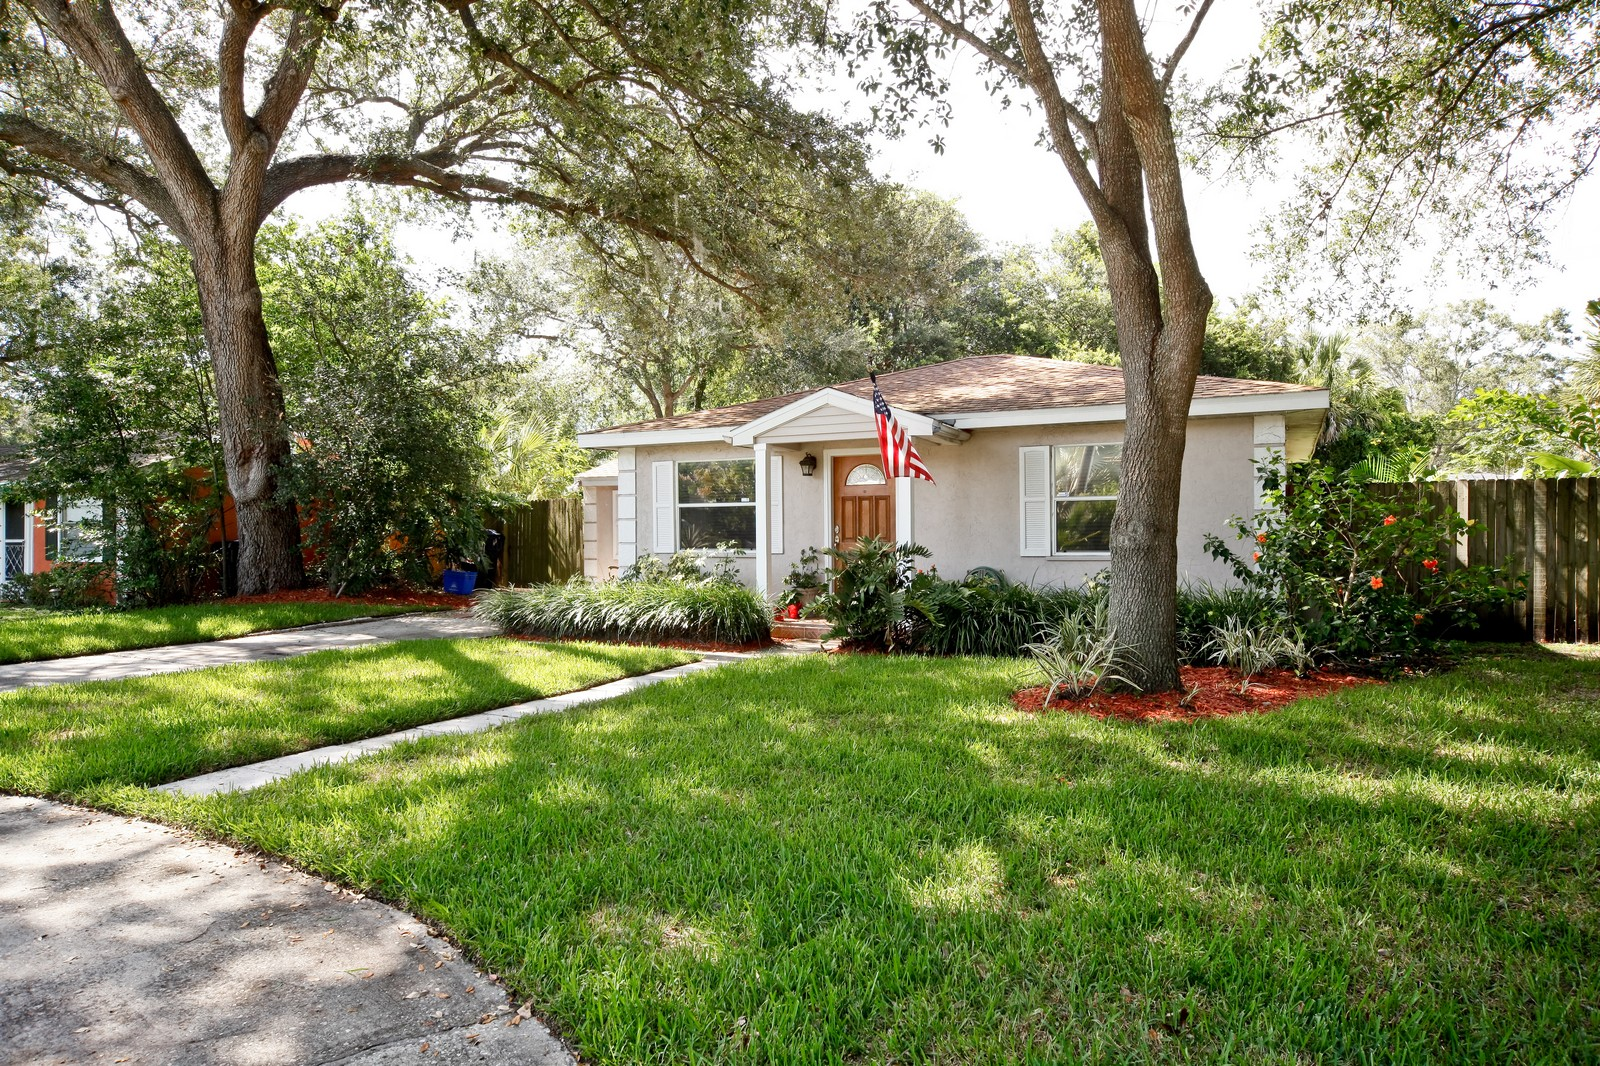 Real Estate Photography - 4603 W Kensington Ave, Tampa, FL, 33629 - Front View